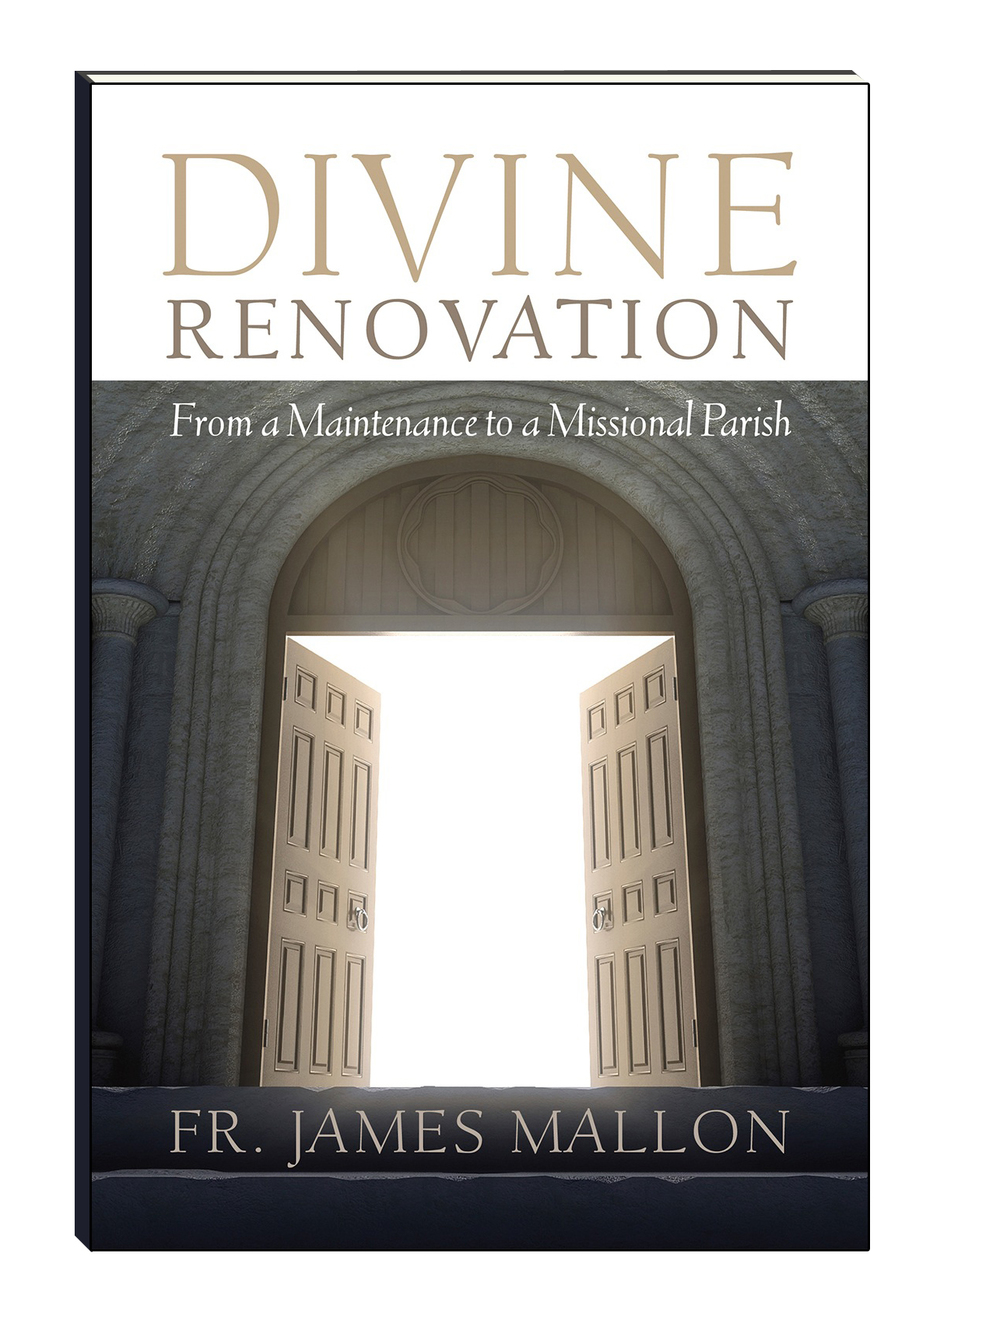 Divine+Renovation+-+From+Maintenance+to+a+Missional+Parish